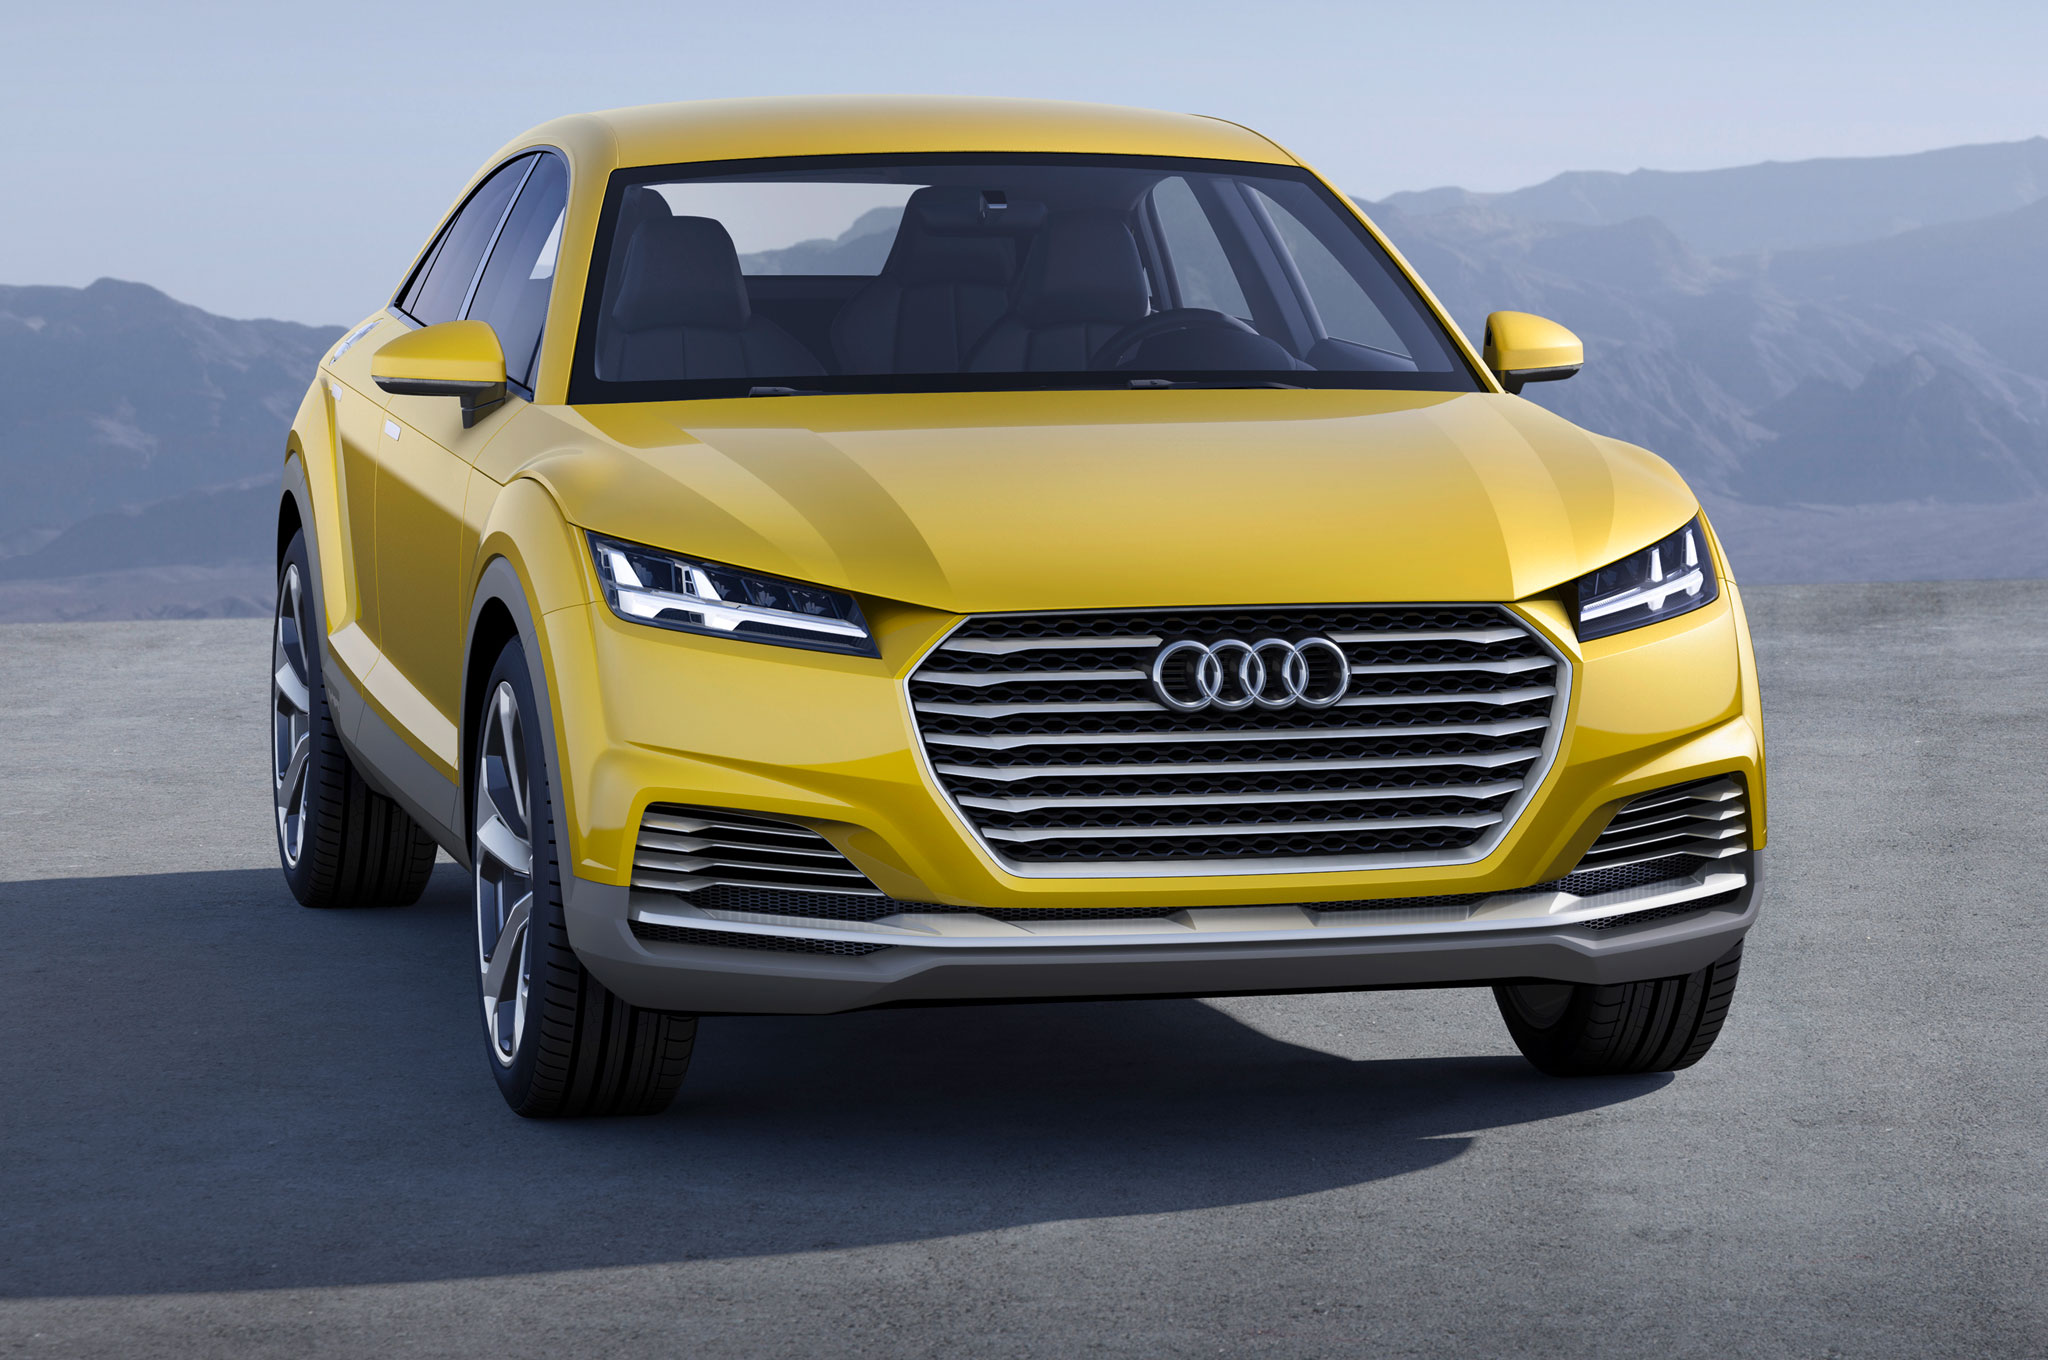 Audi adds Q2 and Q4 to its crossover lineup